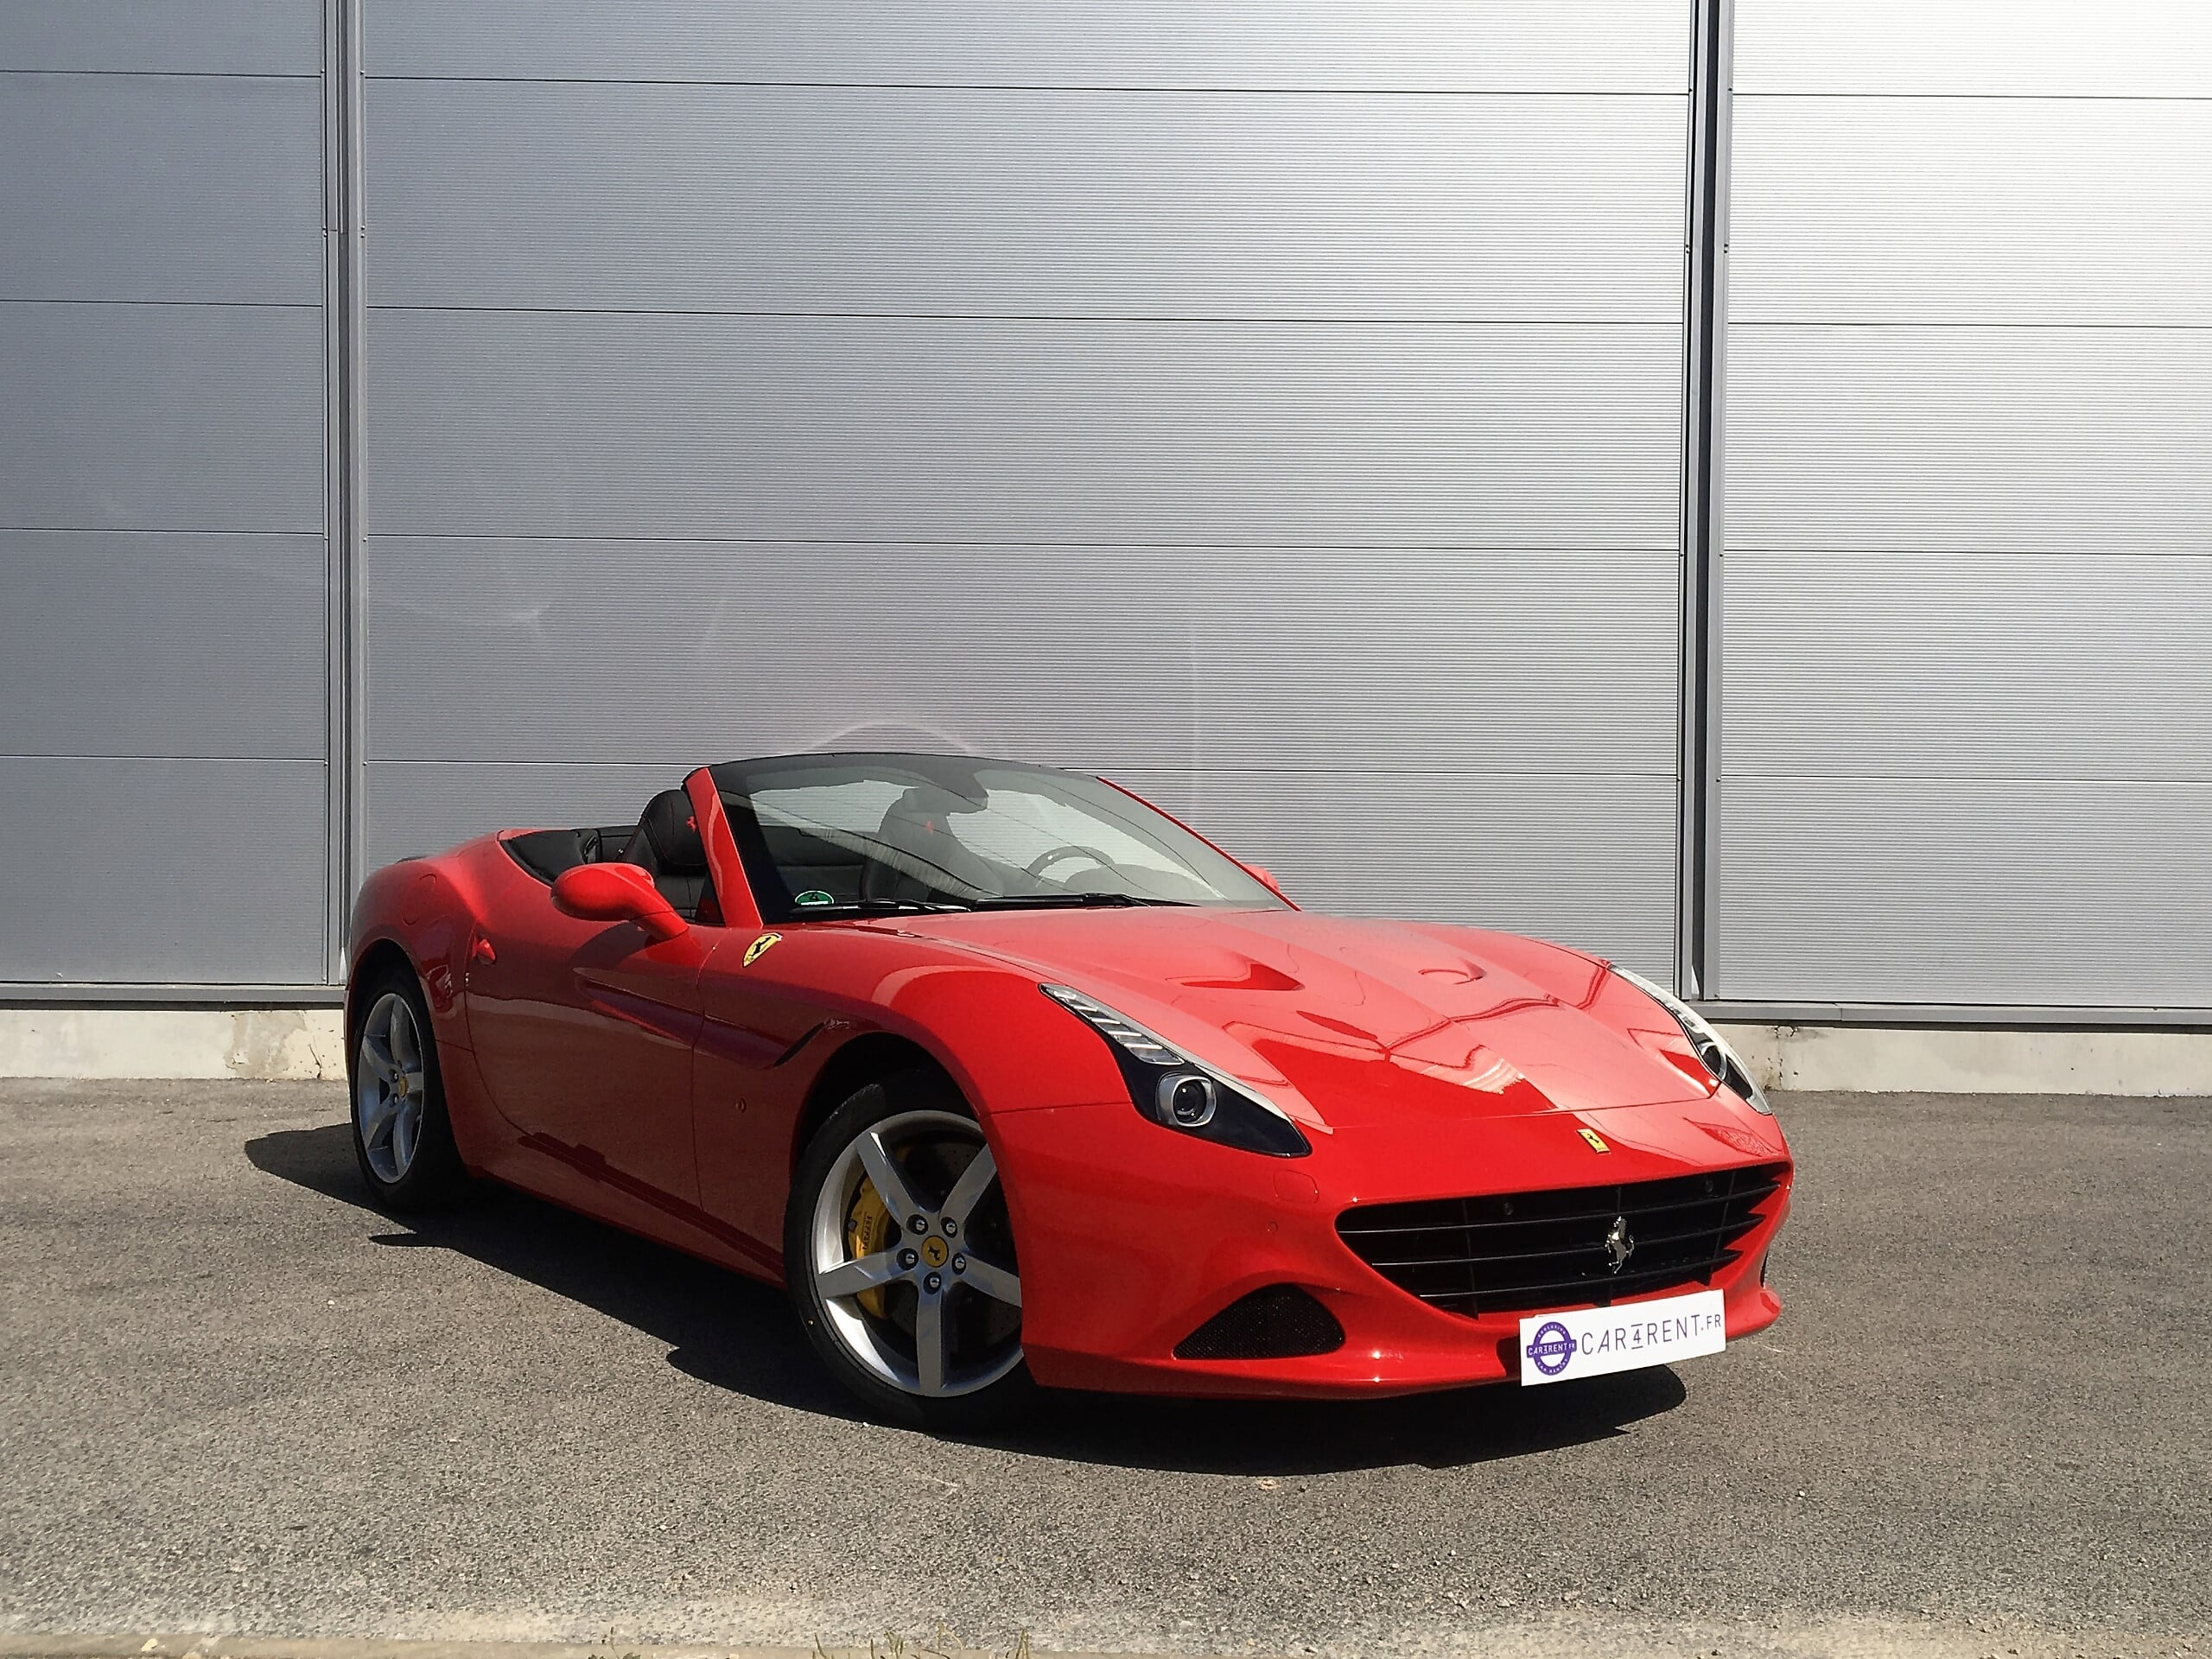 hire ferrari california t french riviera thanks to car4rent